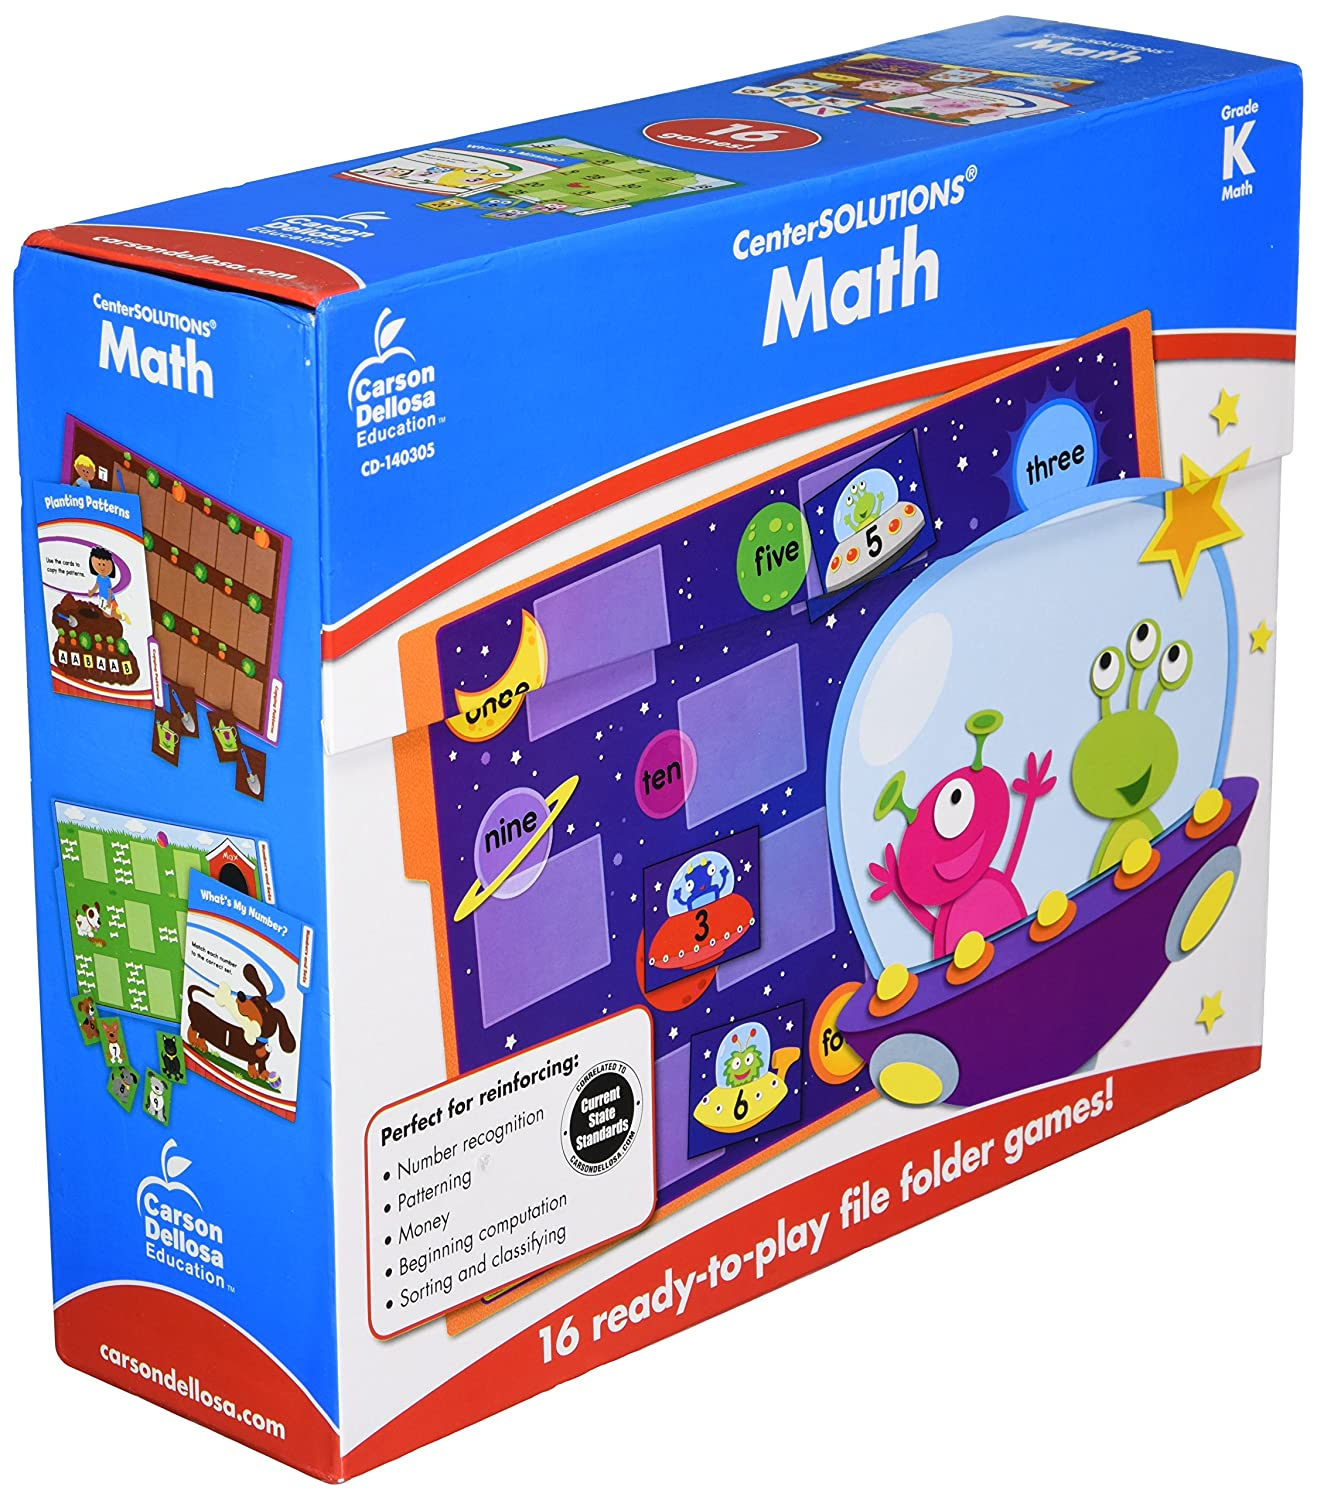 CenterSOLUTIONS Math File Folder Games, Kindergarten, Sold as 1 Each